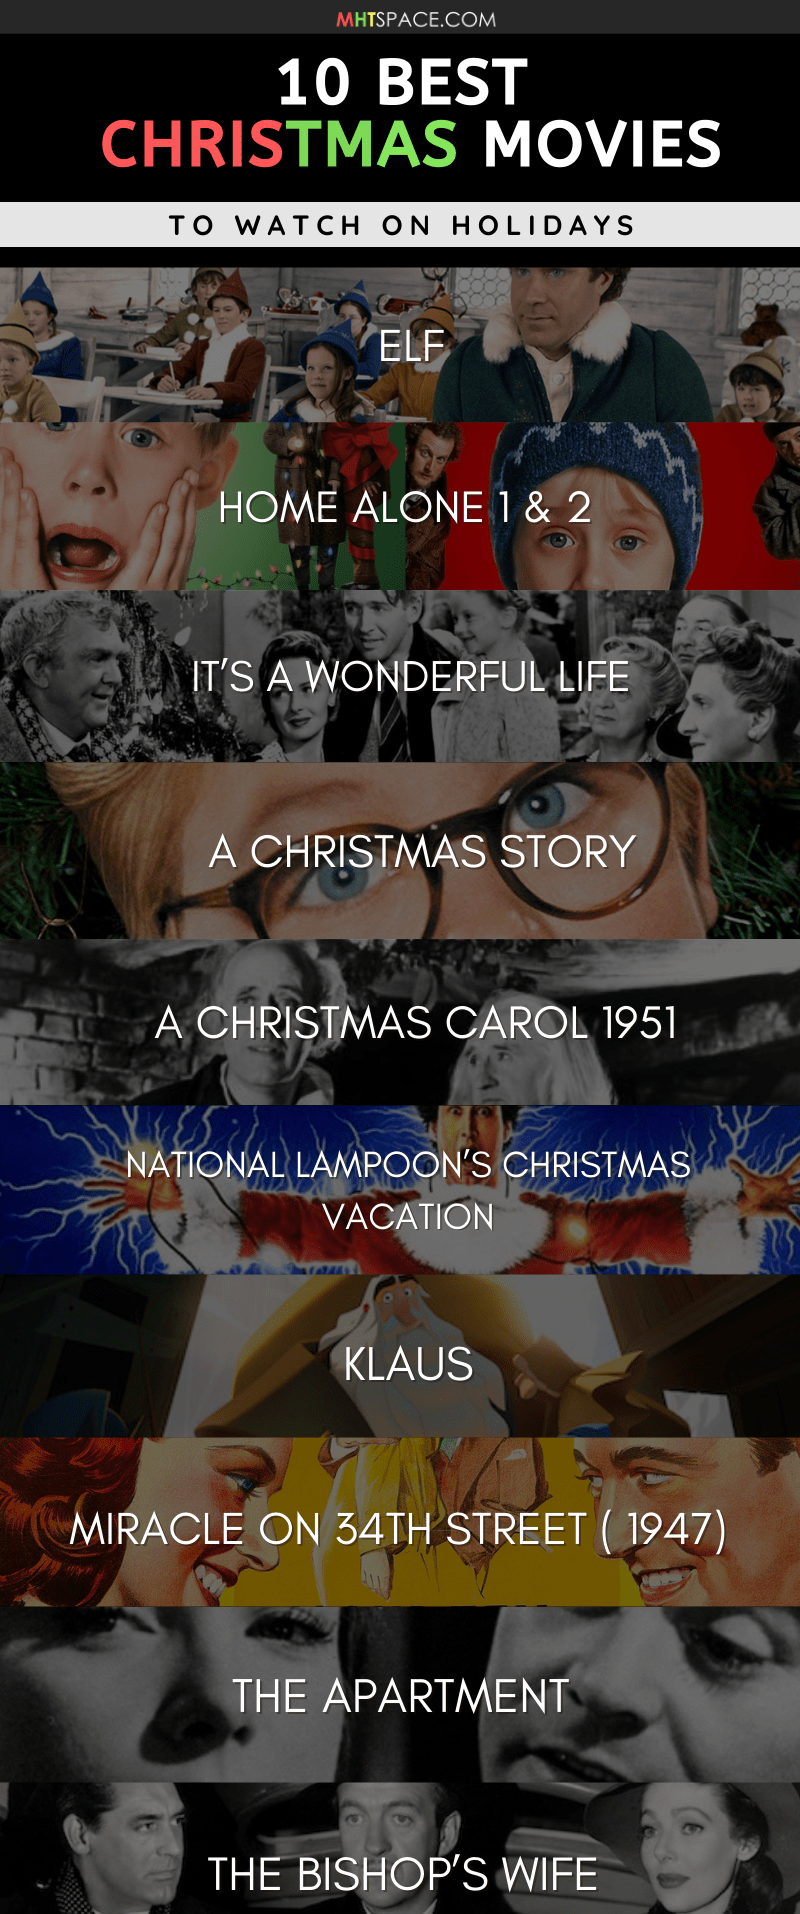 10 Best CHRISTMAS Movies pin